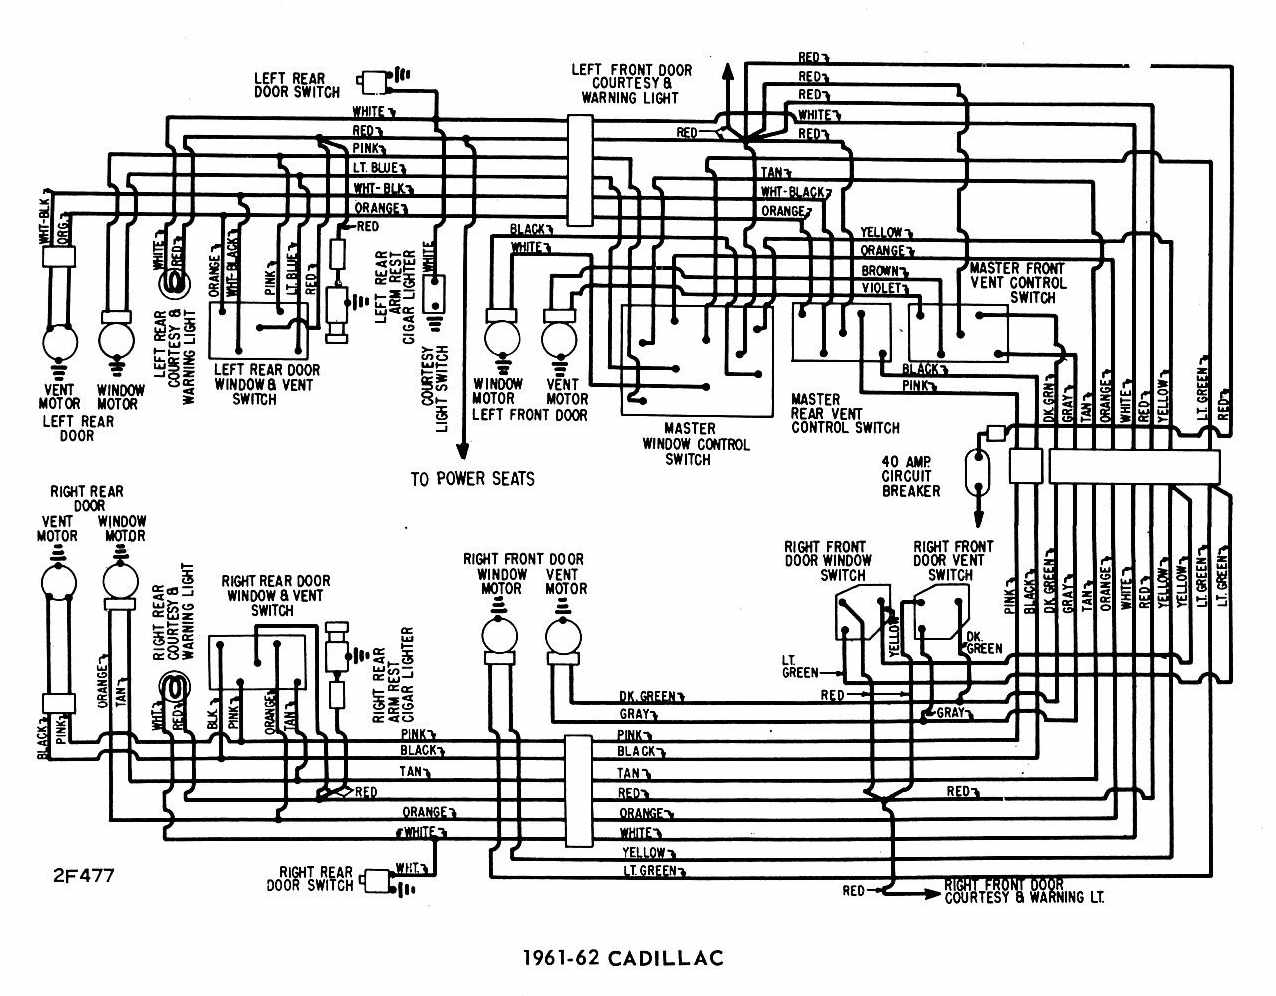 cadillac radio wiring diagrams wiring library fleetwood coronado wiring diagram on cadillac cts wiring diagrams [ 1276 x 996 Pixel ]